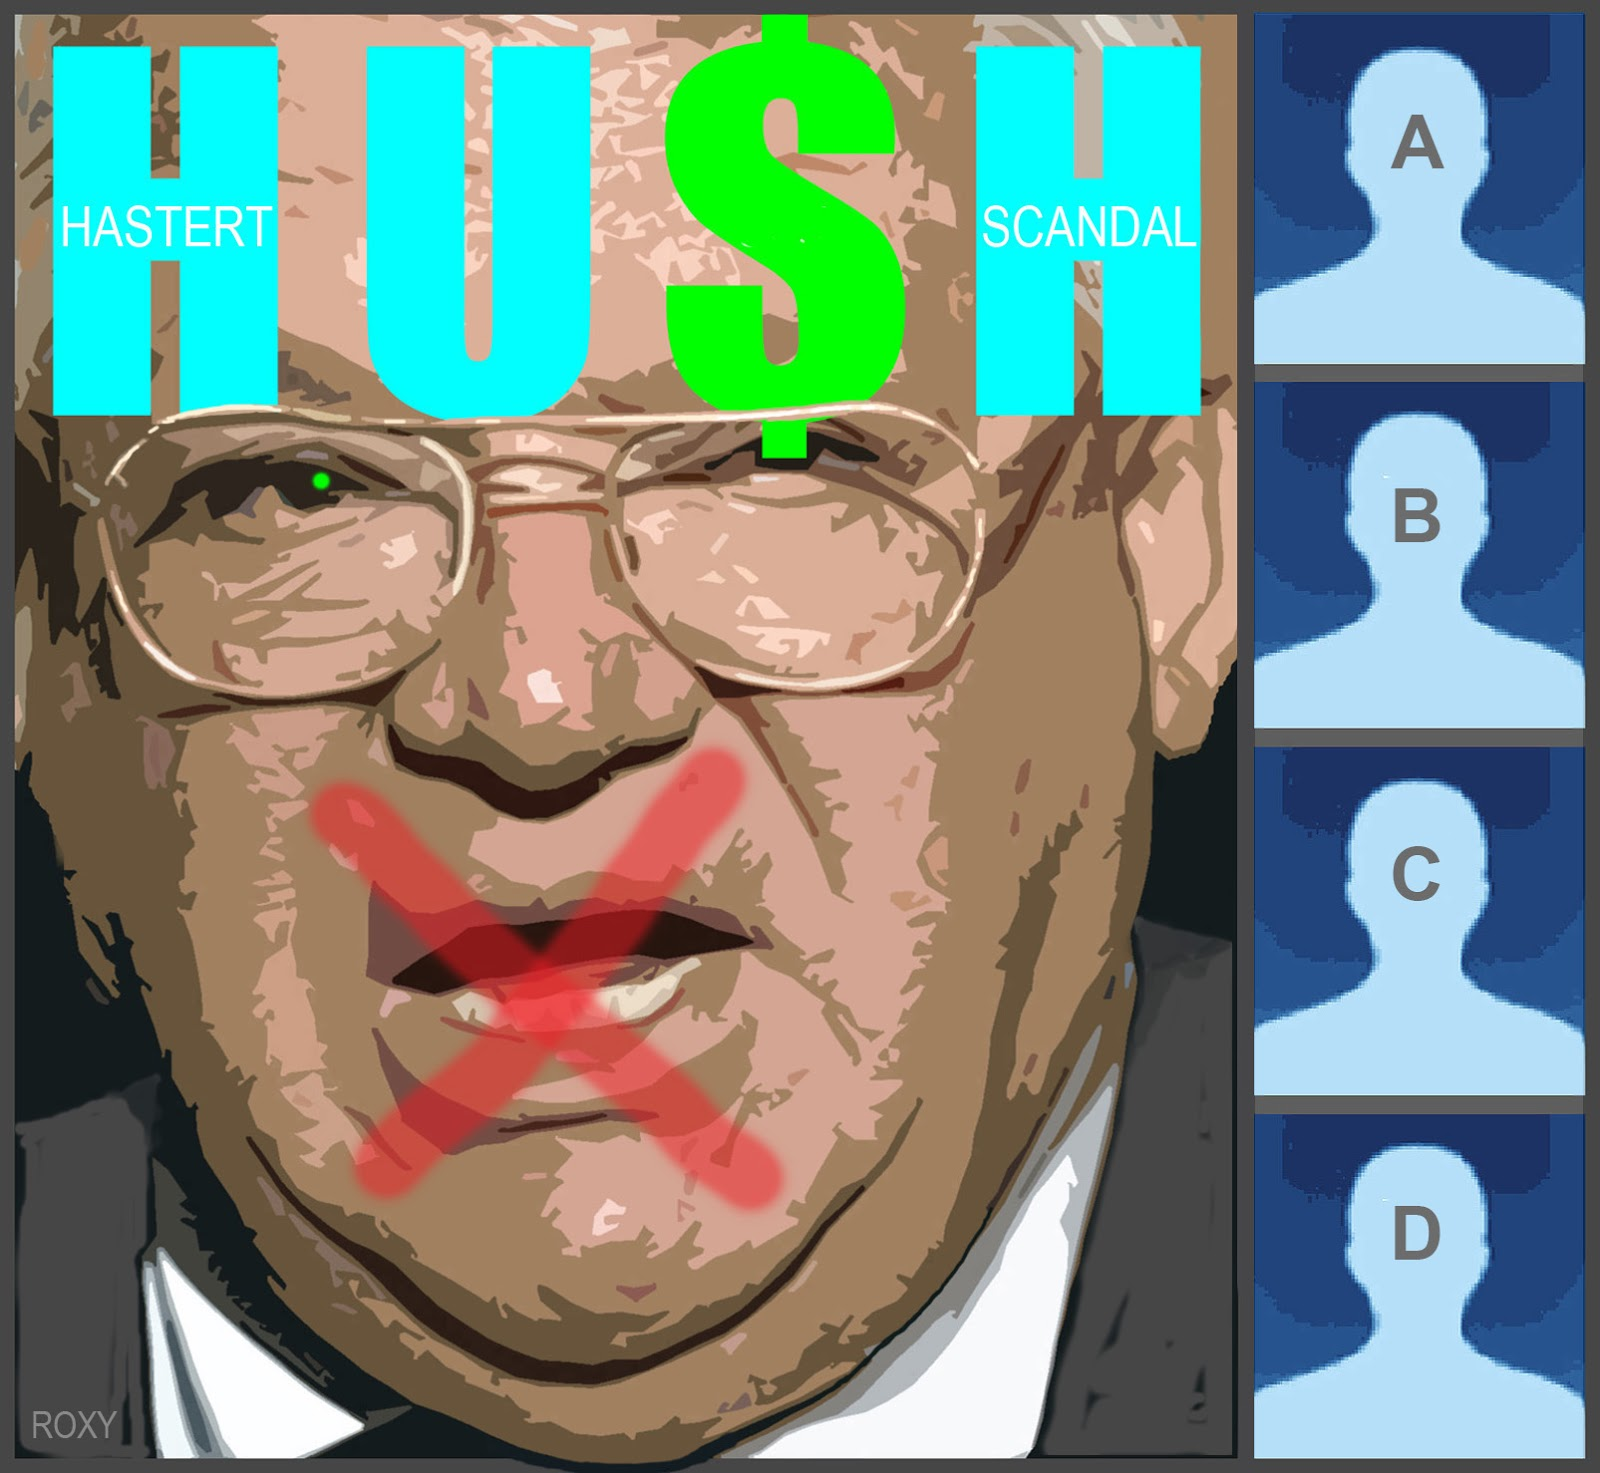 Pedophile house-speaker Dennis Hastert hushed about hush money scandal